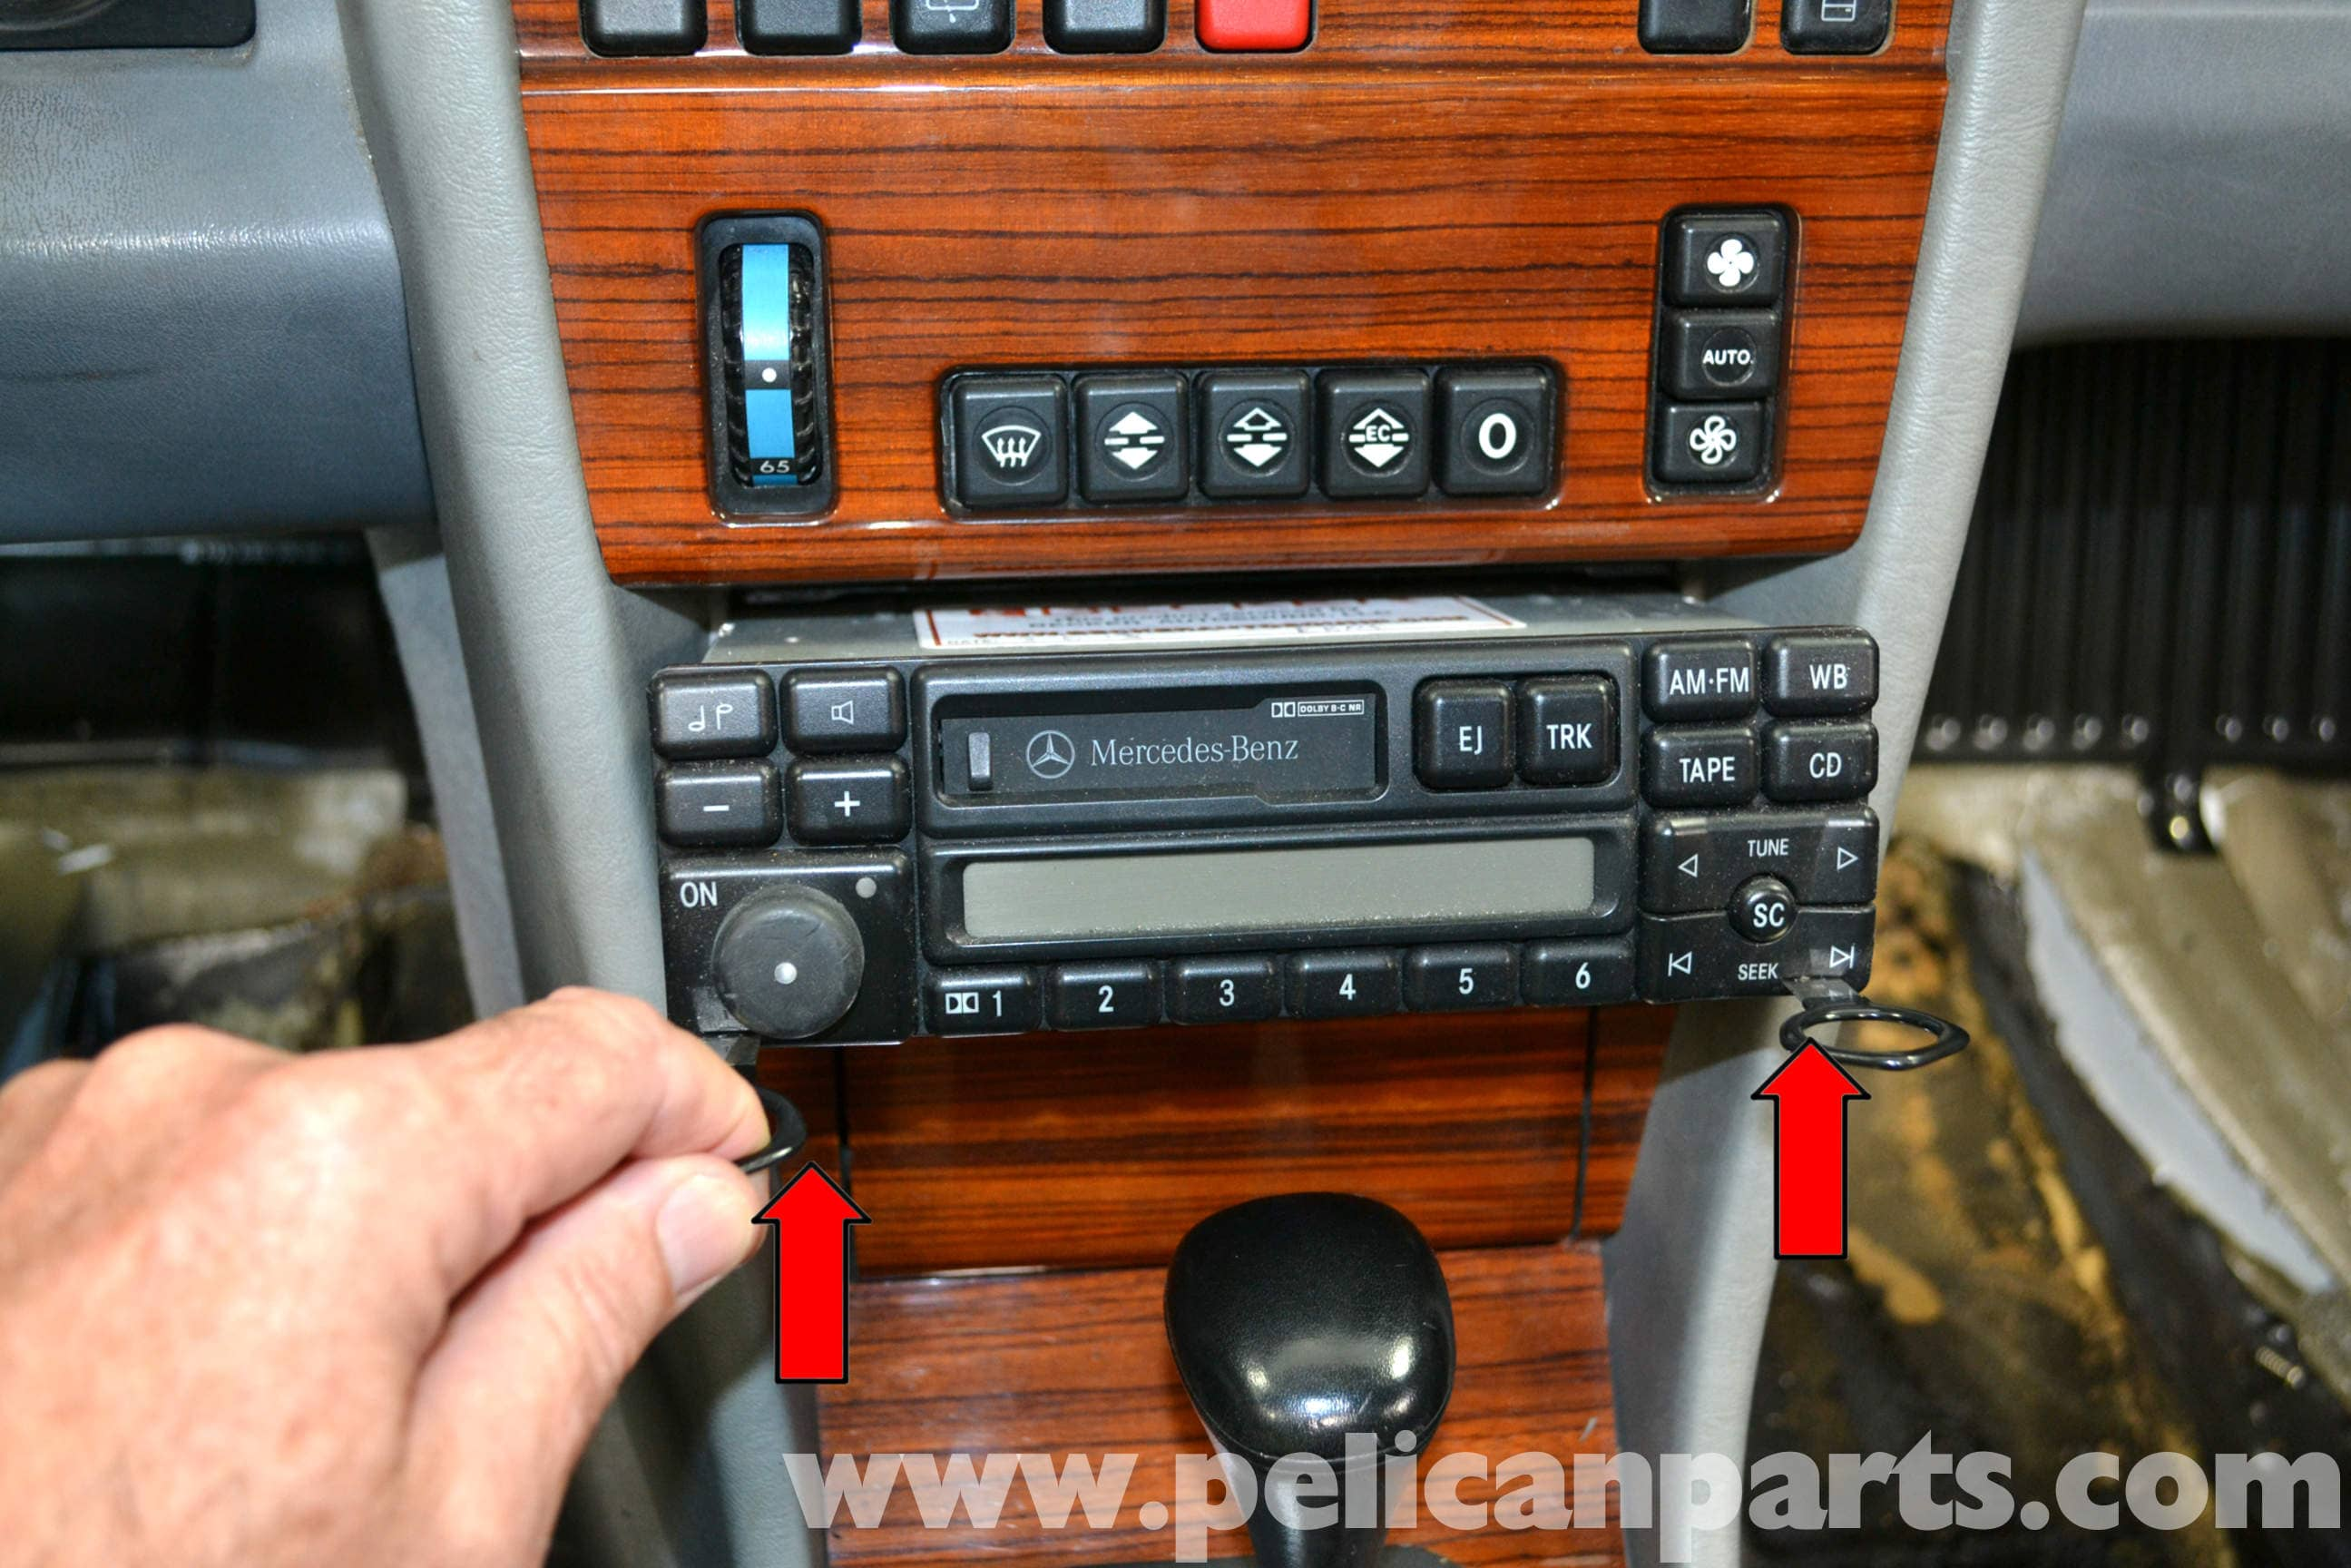 Mercedes-Benz W124 Radio Removal | 1986-1995 E-Class | Pelican Parts ...